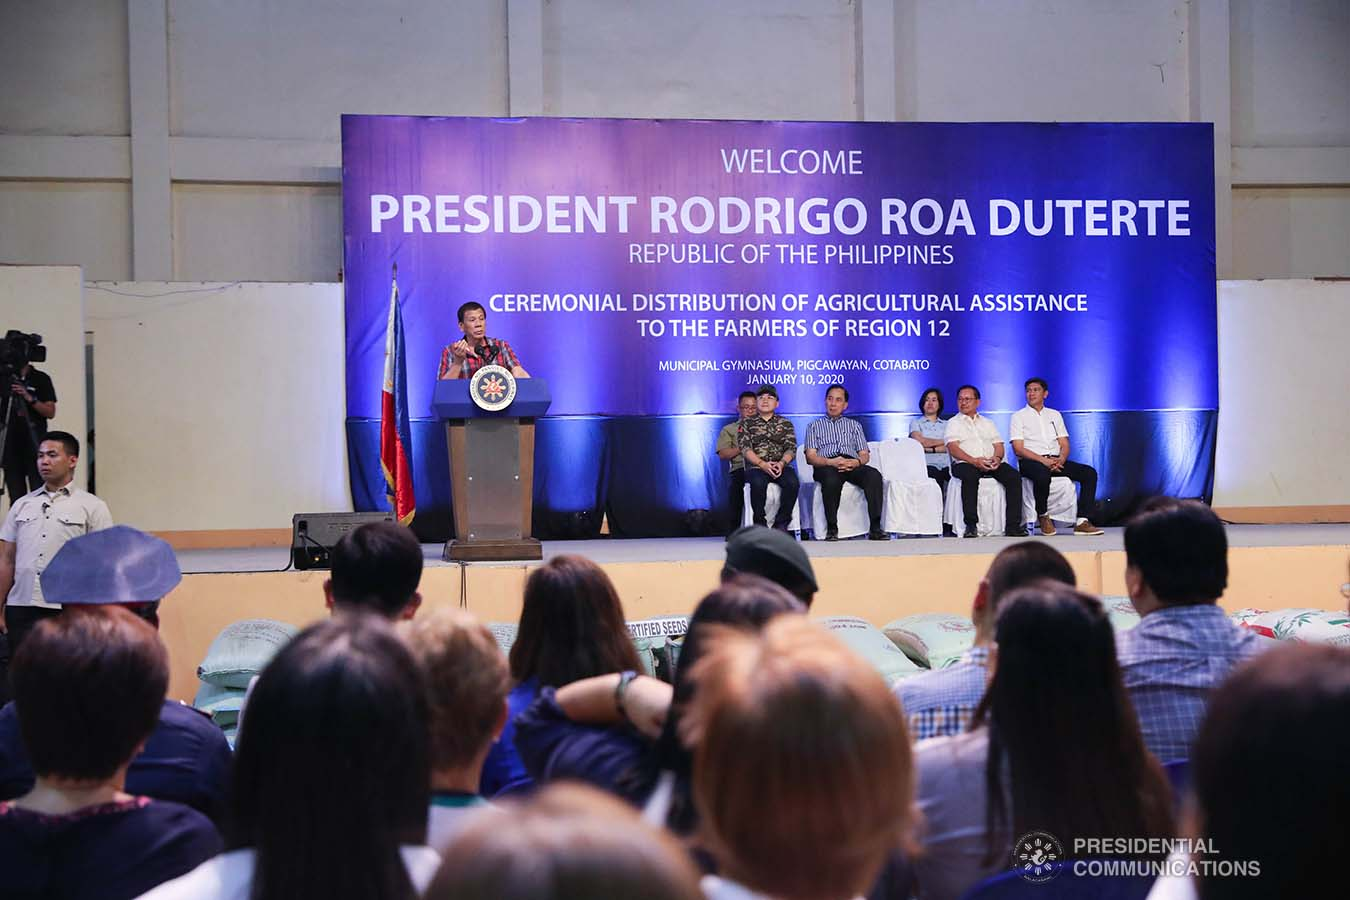 President Rodrigo Roa Duterte delivers a speech during the ceremonial distribution of agricultural assistance to the farmers of Region 12 at the Pigcawayan Municipal Gymnasium in Cotabato on January 10, 2020. ROBINSON NIÑAL JR./PRESIDENTIAL PHOTO